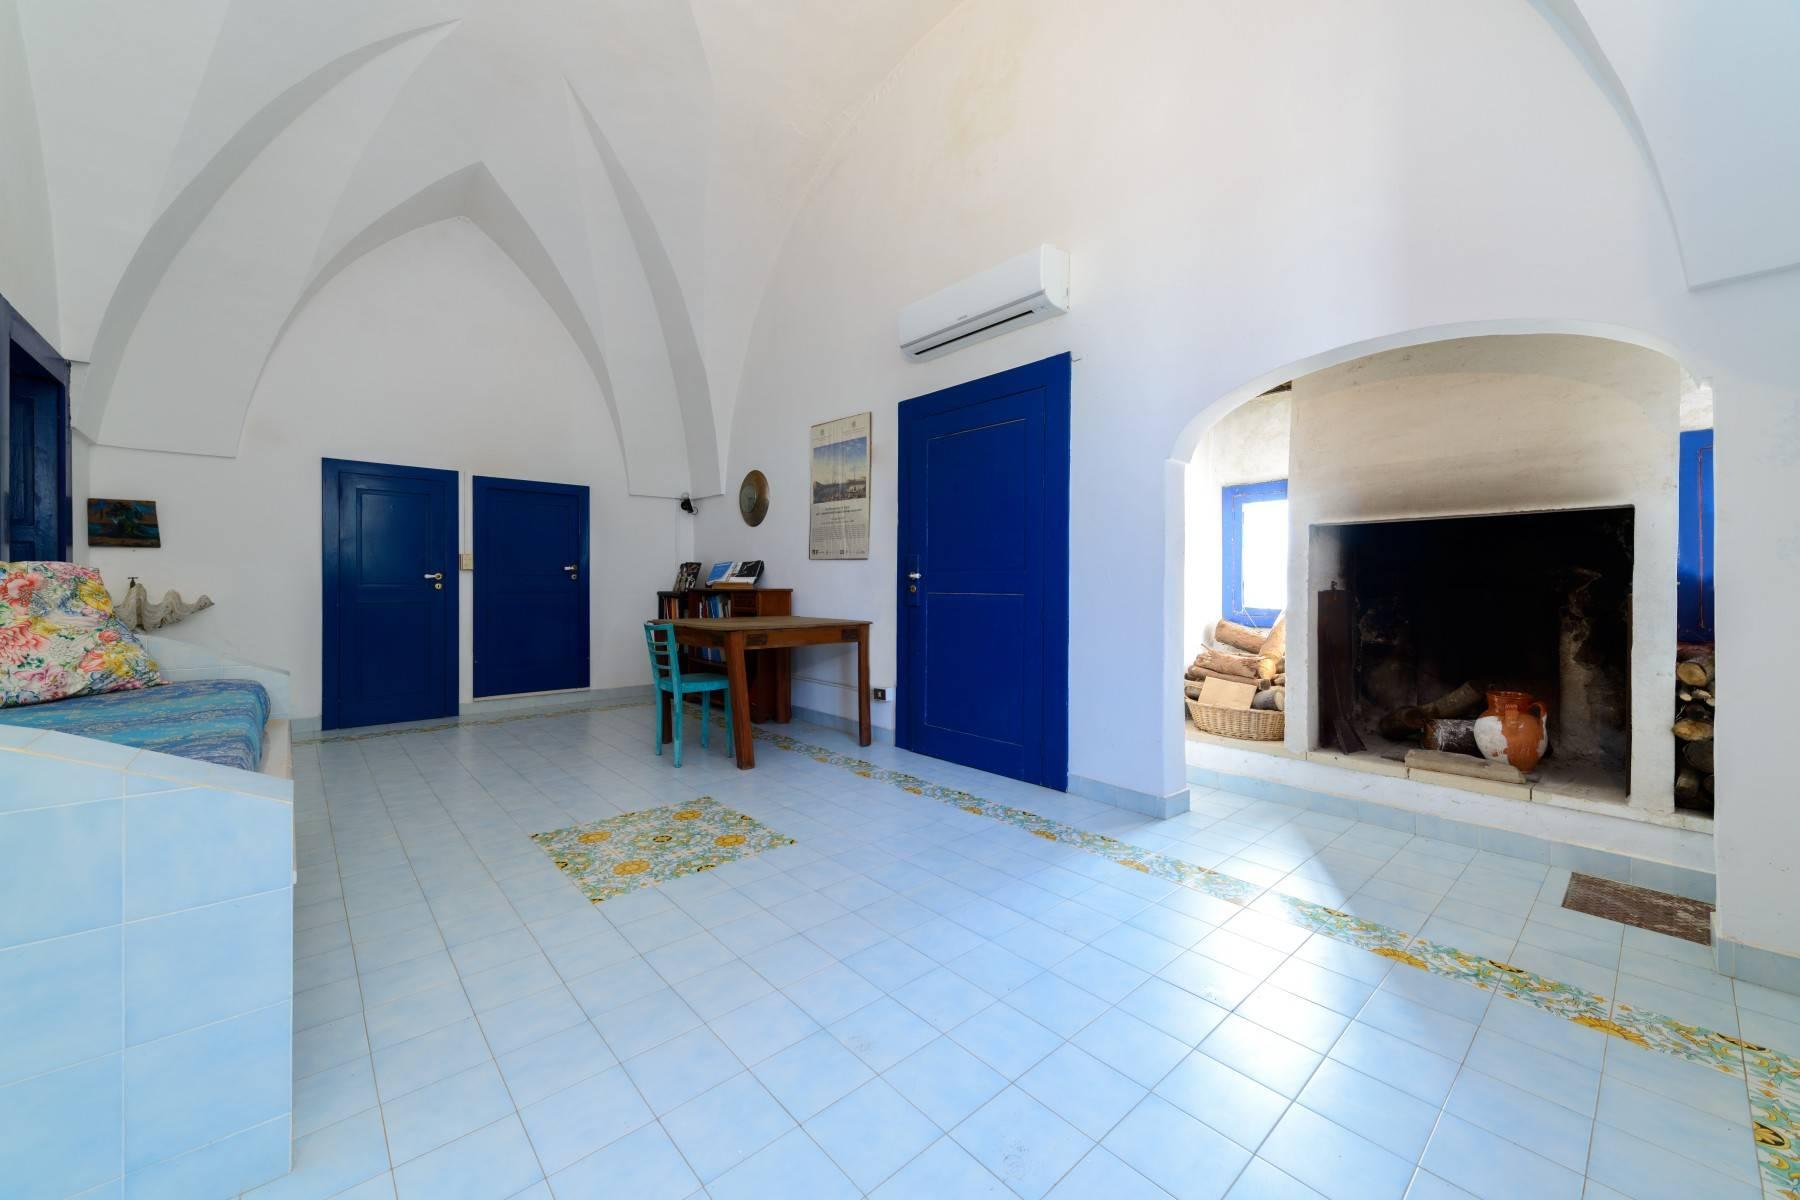 Luxury farmhouse in the heart of Salento - 36